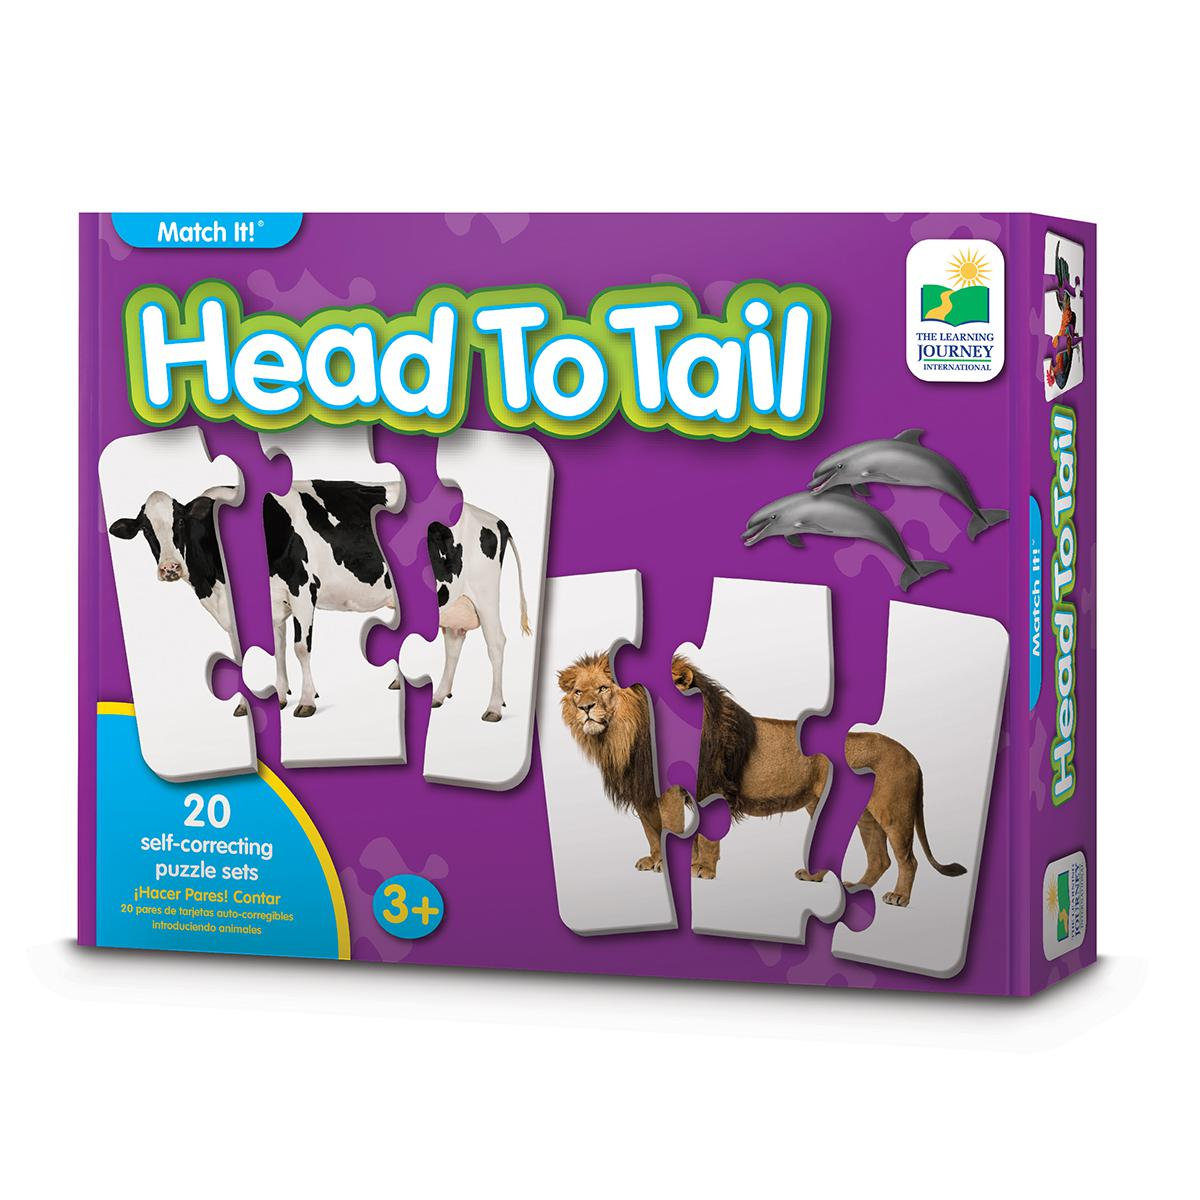 Match It!® Head to Tail